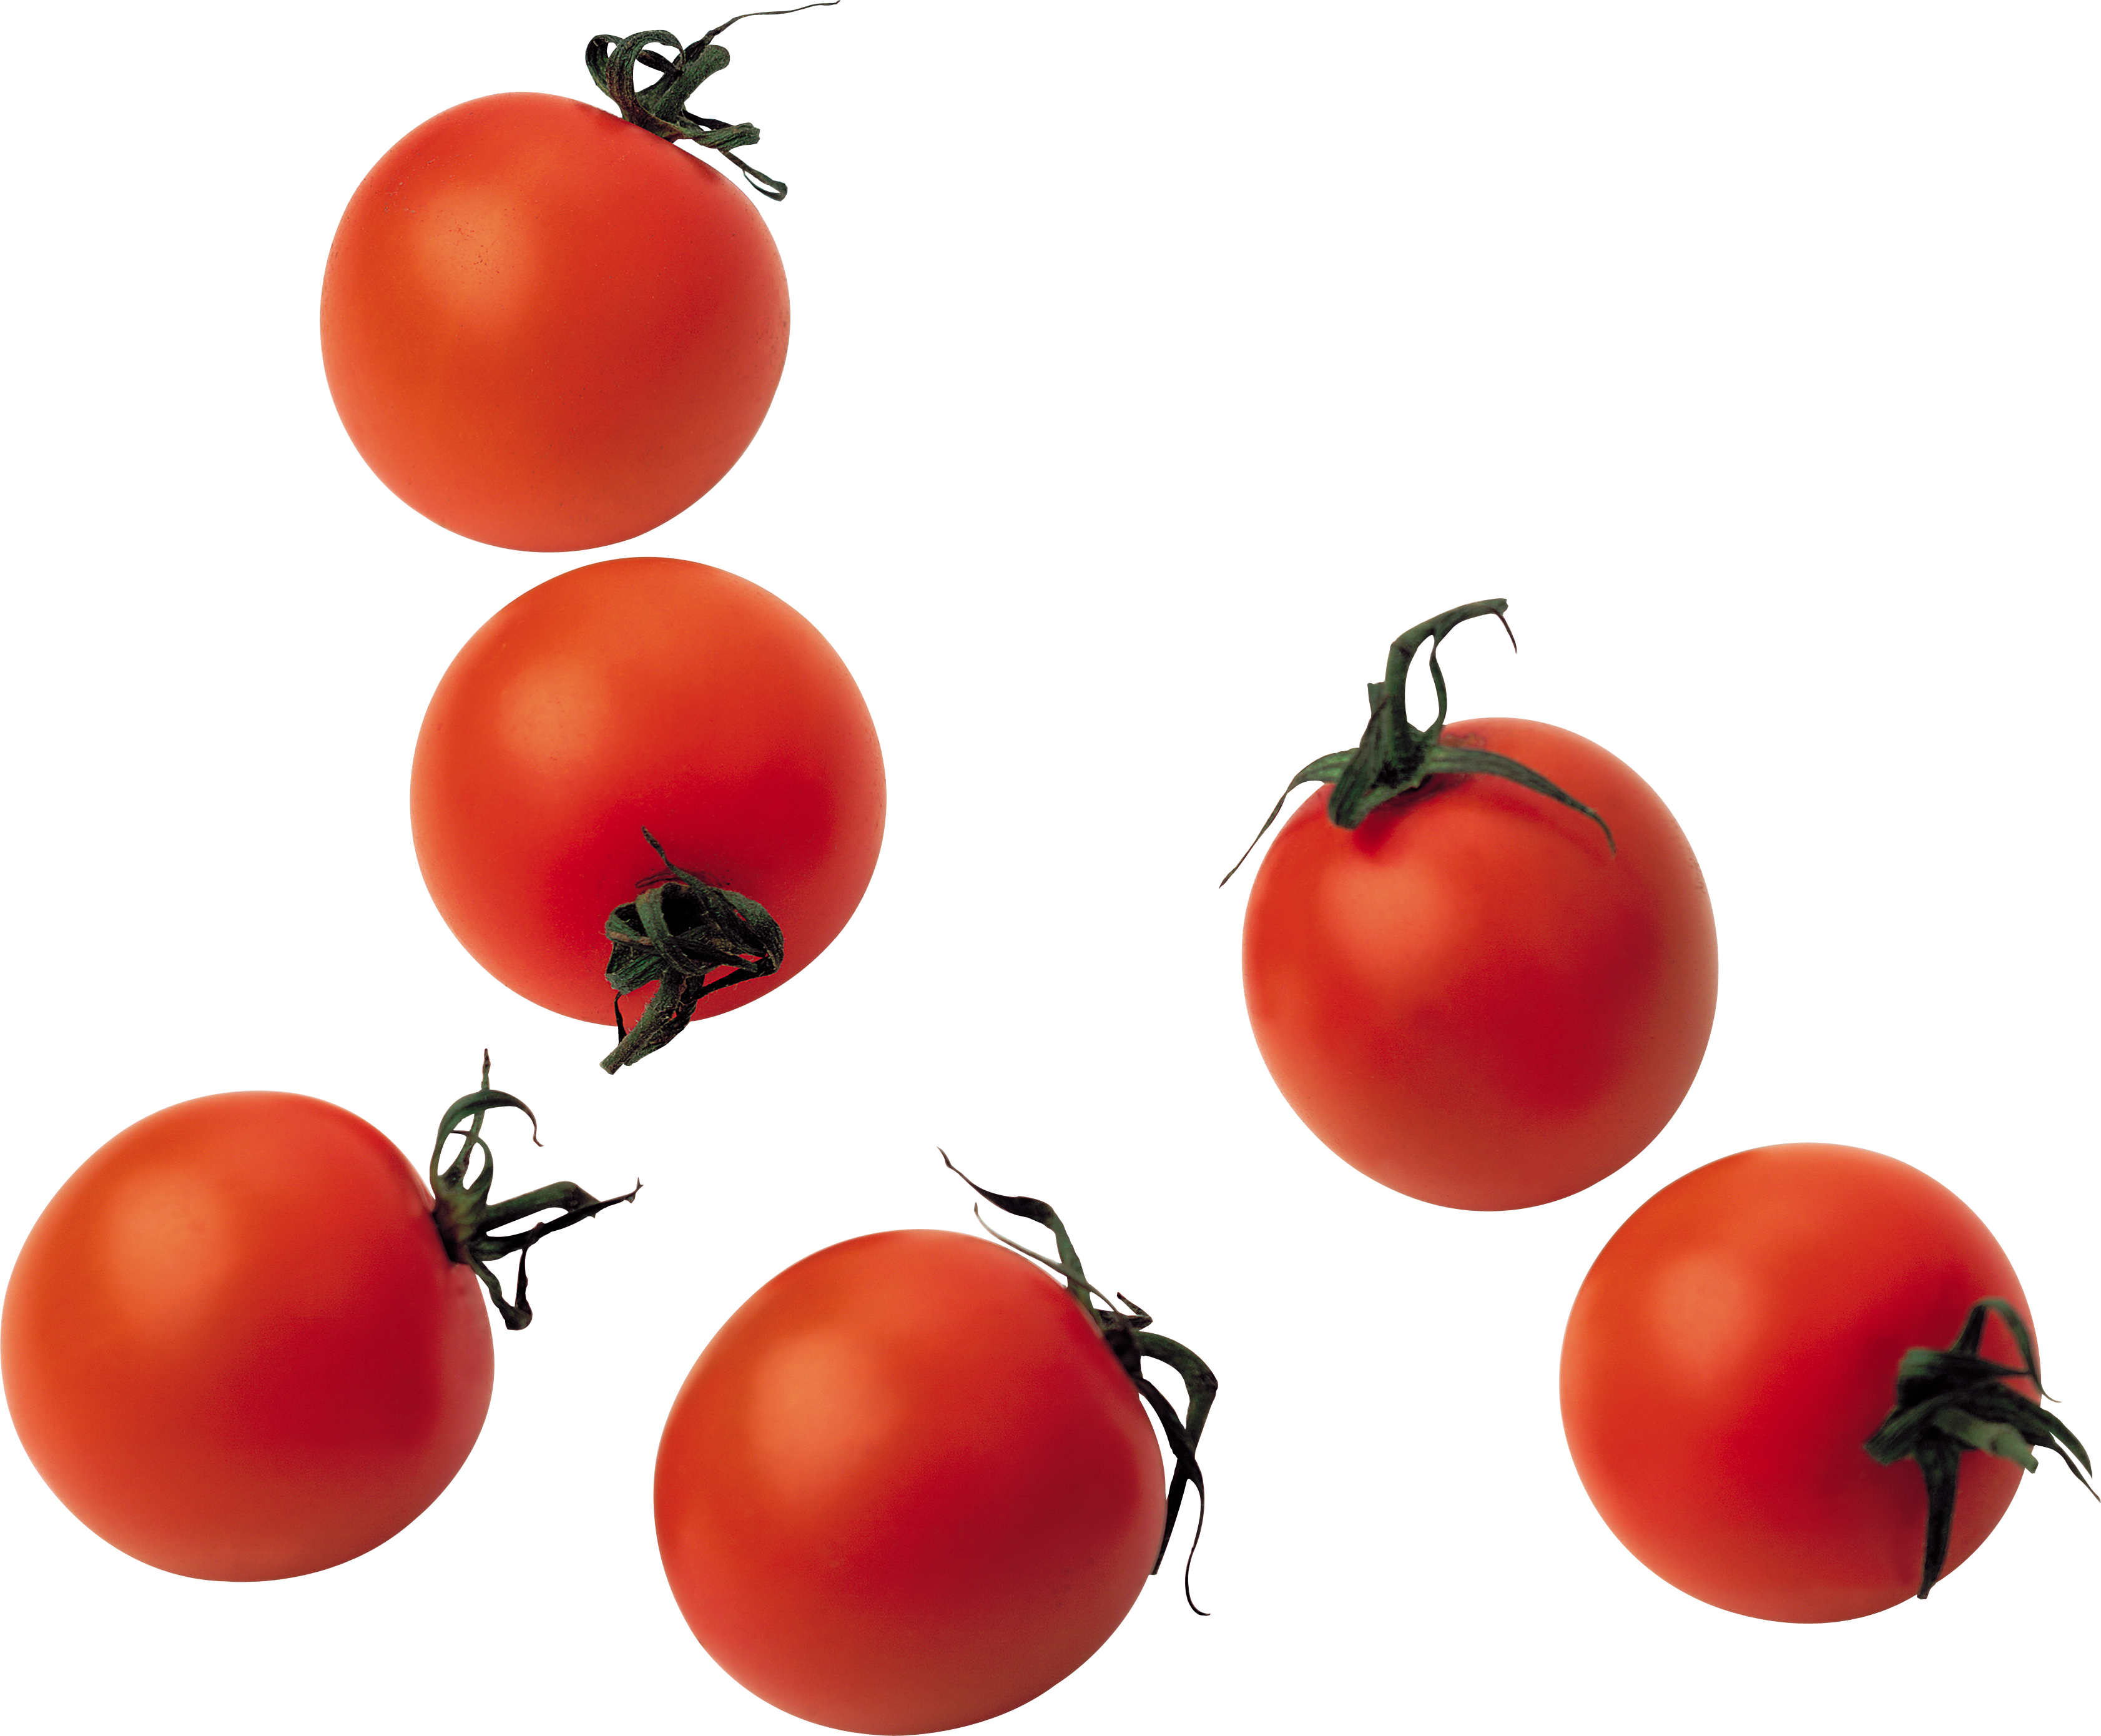 Png images free download. Eyes clipart tomato